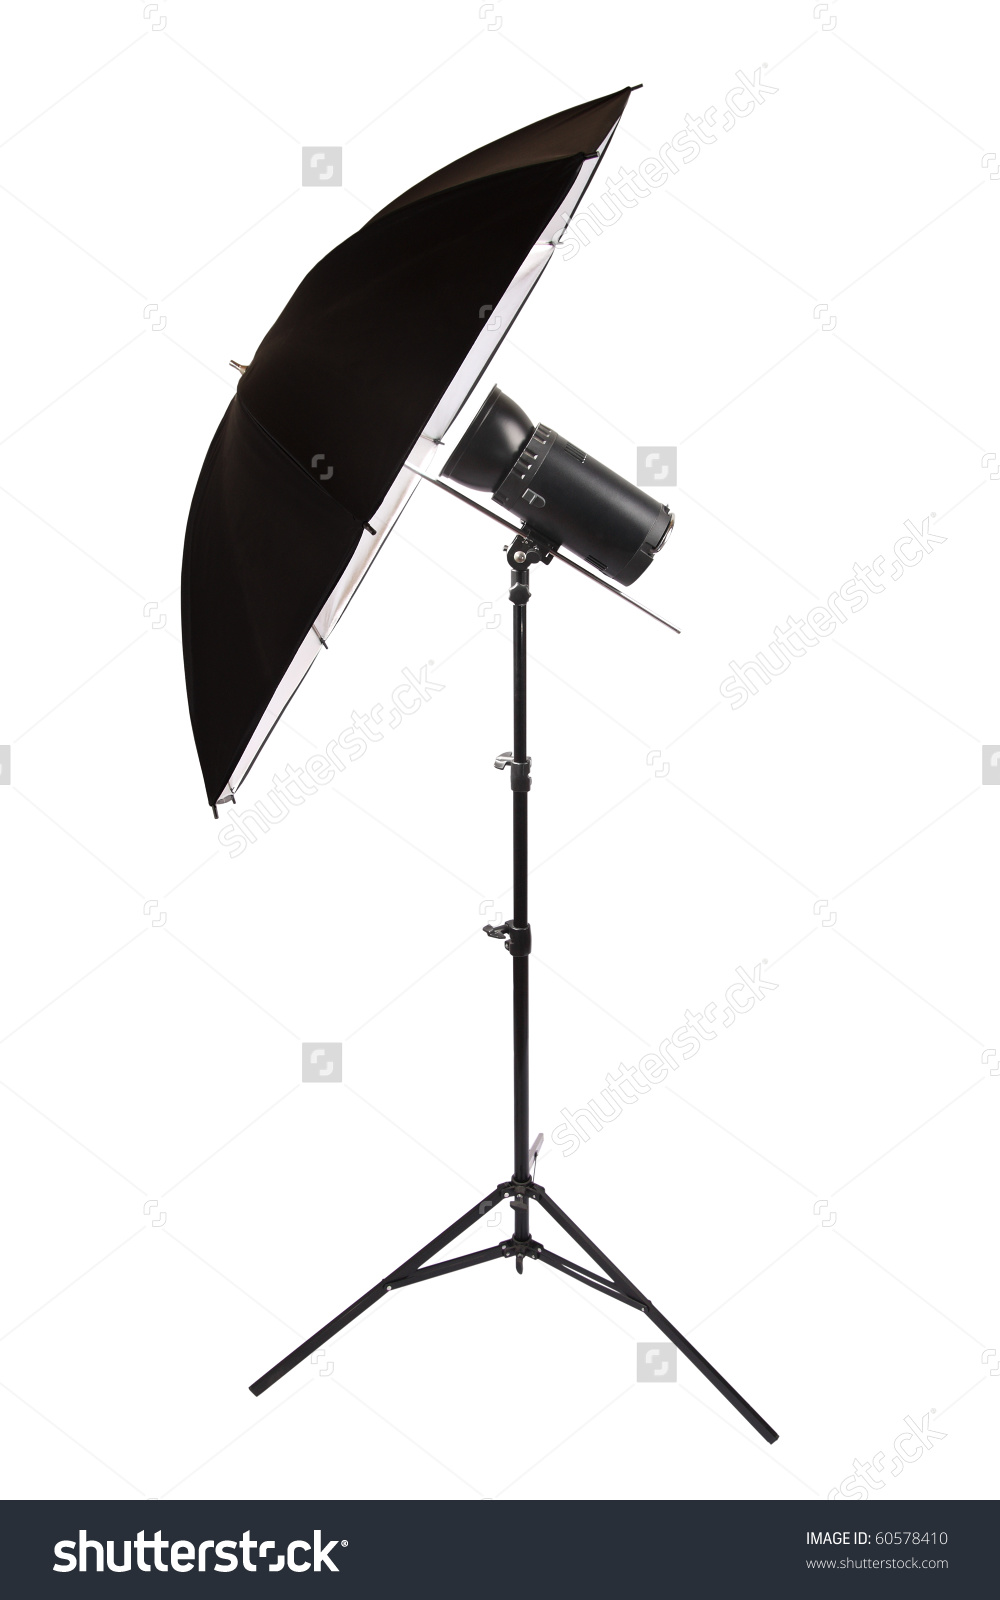 Studio Flash Isolated On White,Reflector Umbrella Stock Photo.